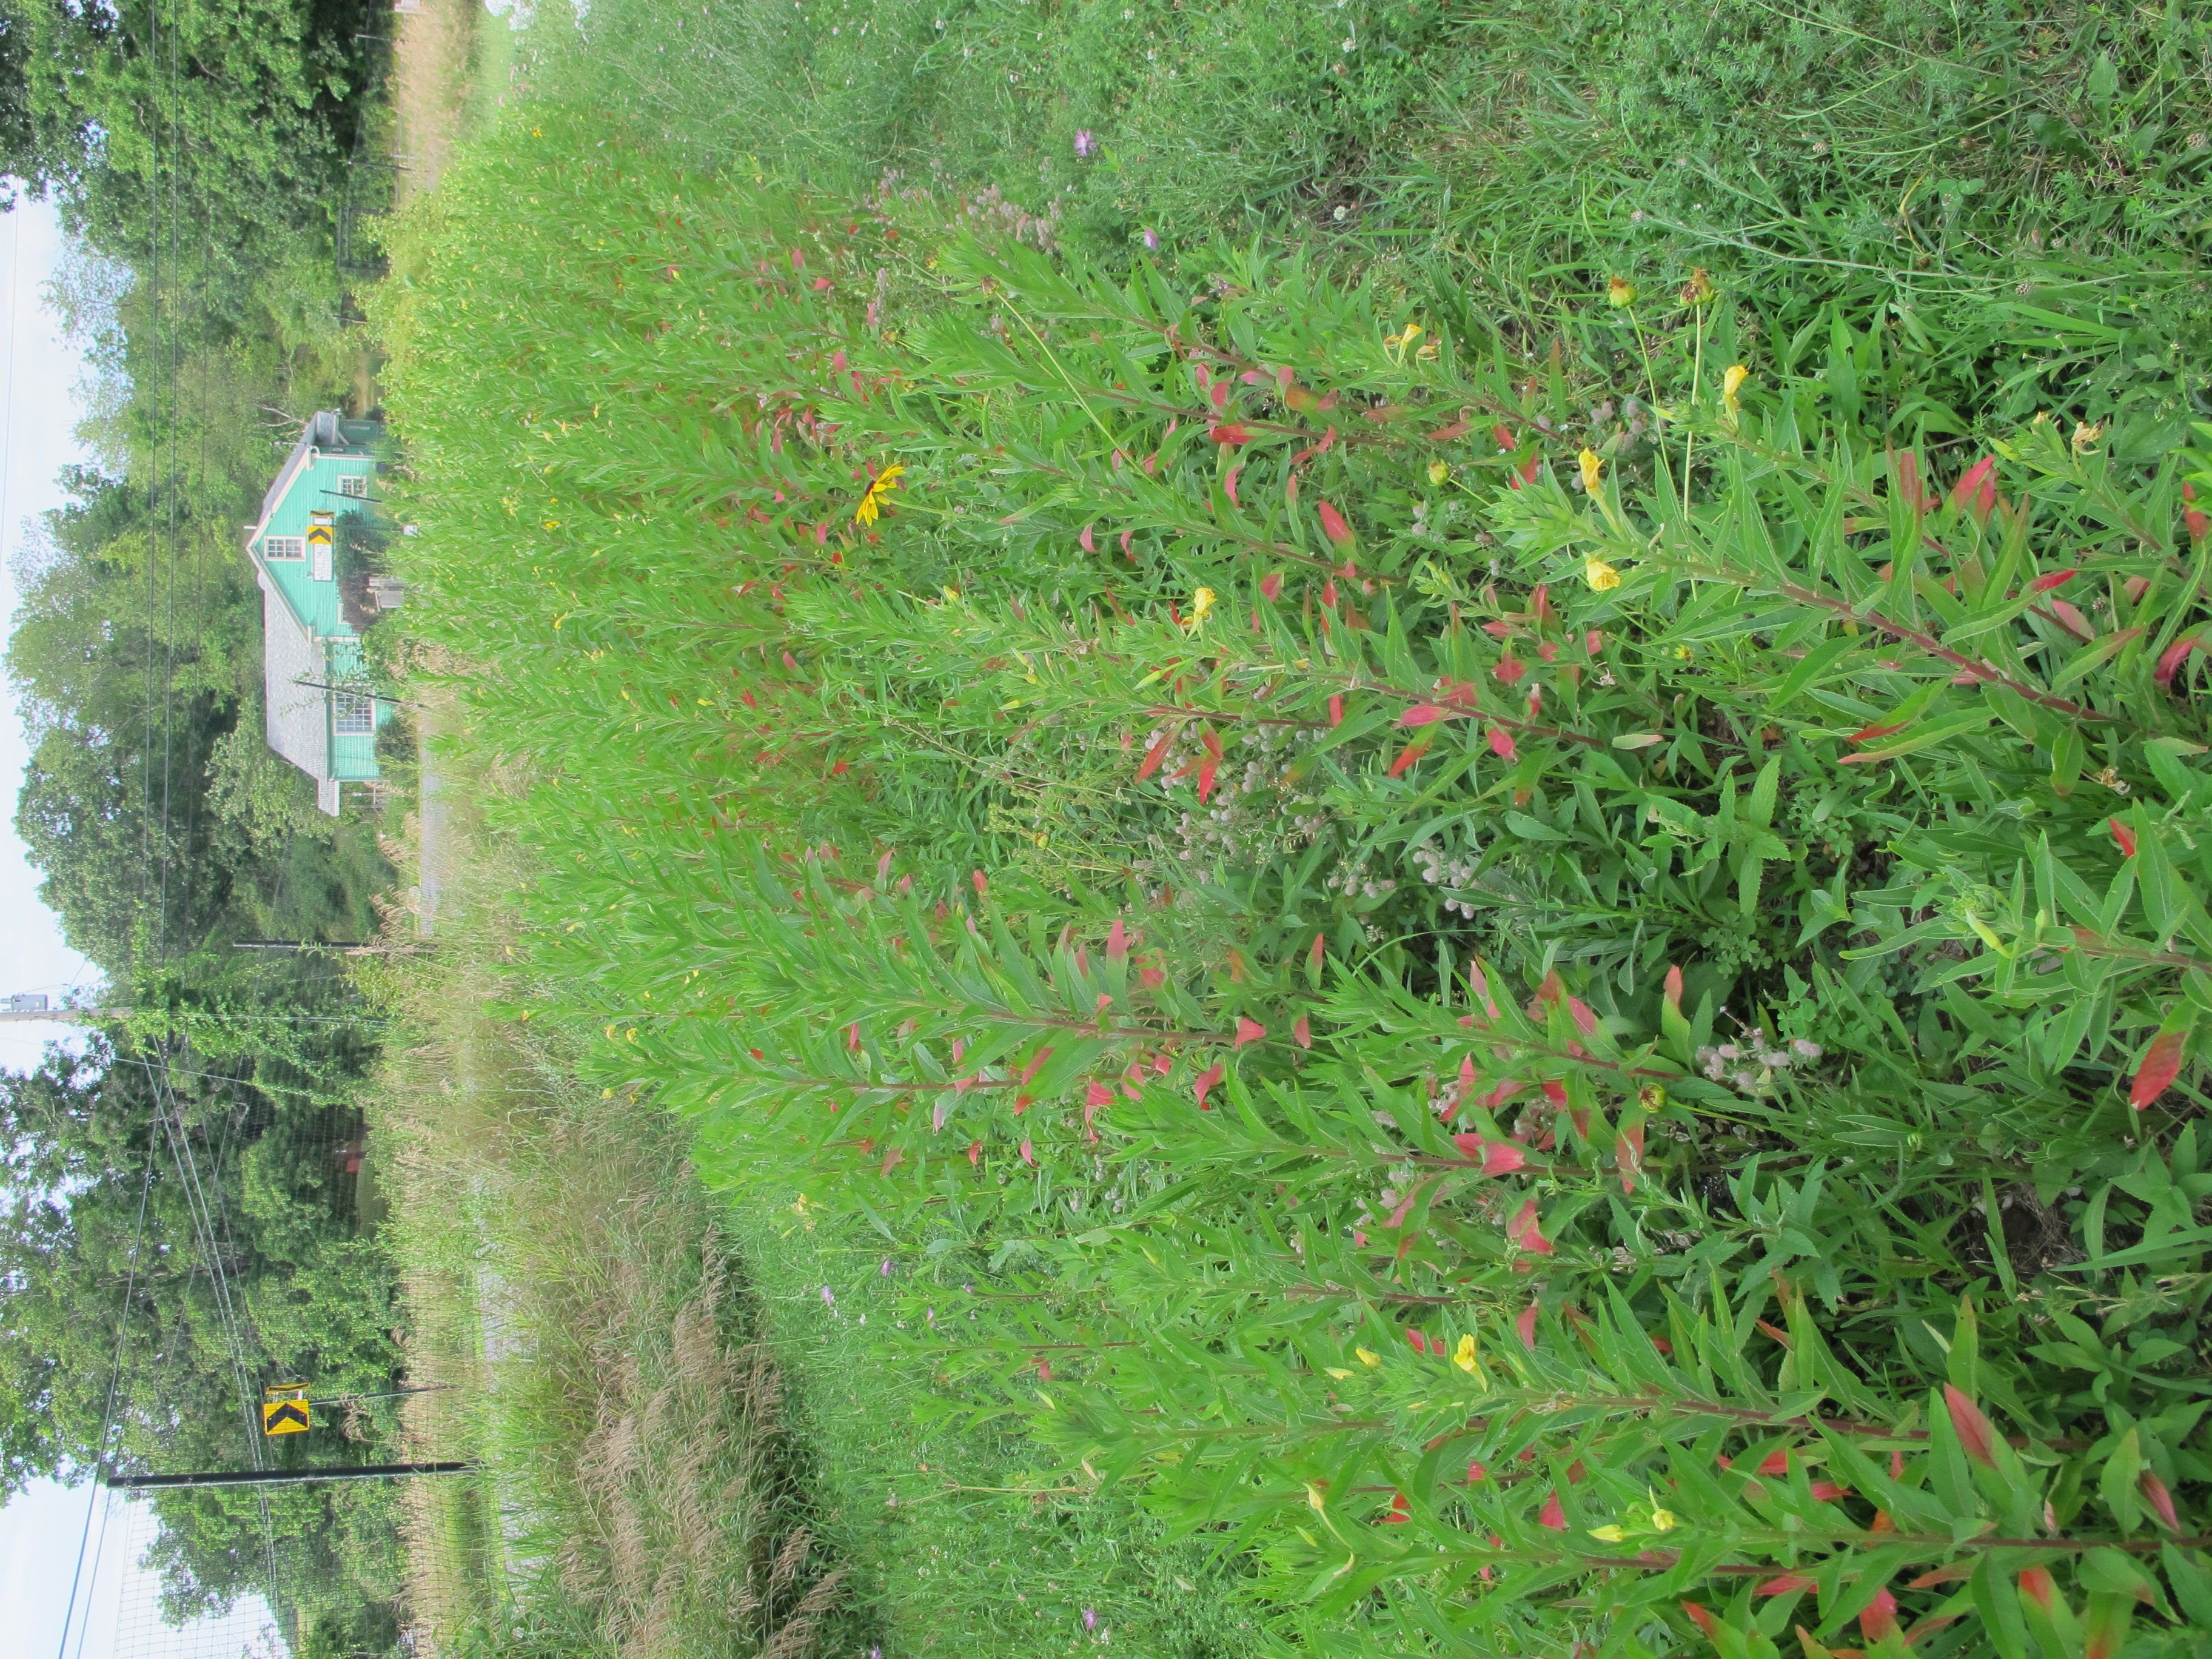 lush green plants have filled in the strip of soil